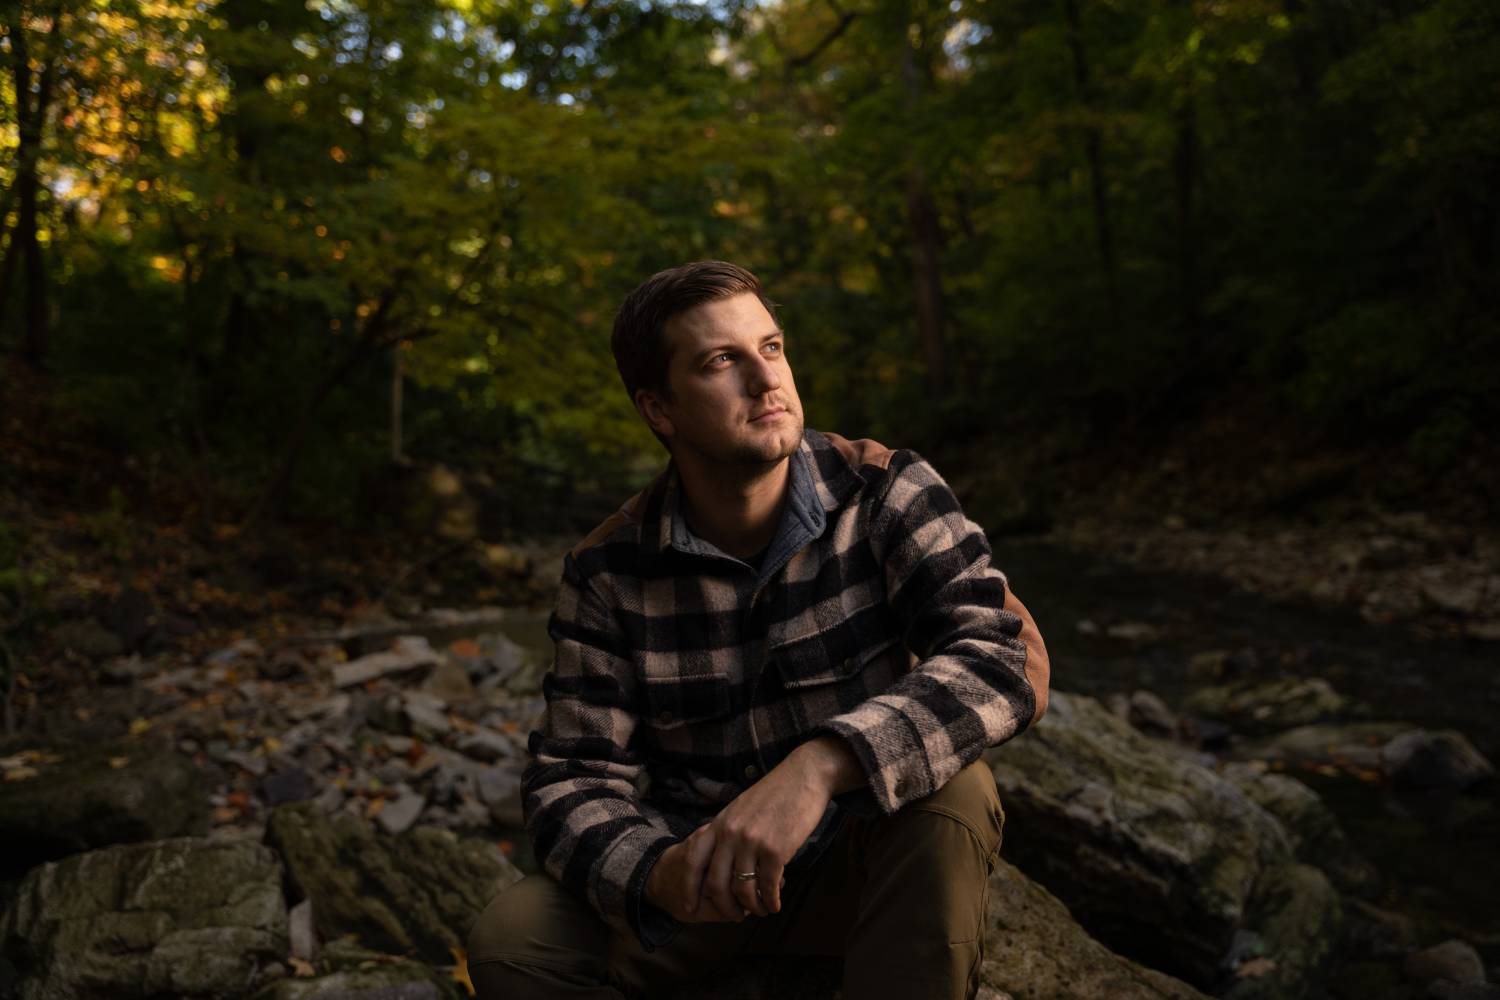 Portrait of man sitting beside river in forest, shot using Sigma 24-70mm f/2.8 DG DN Art Lens